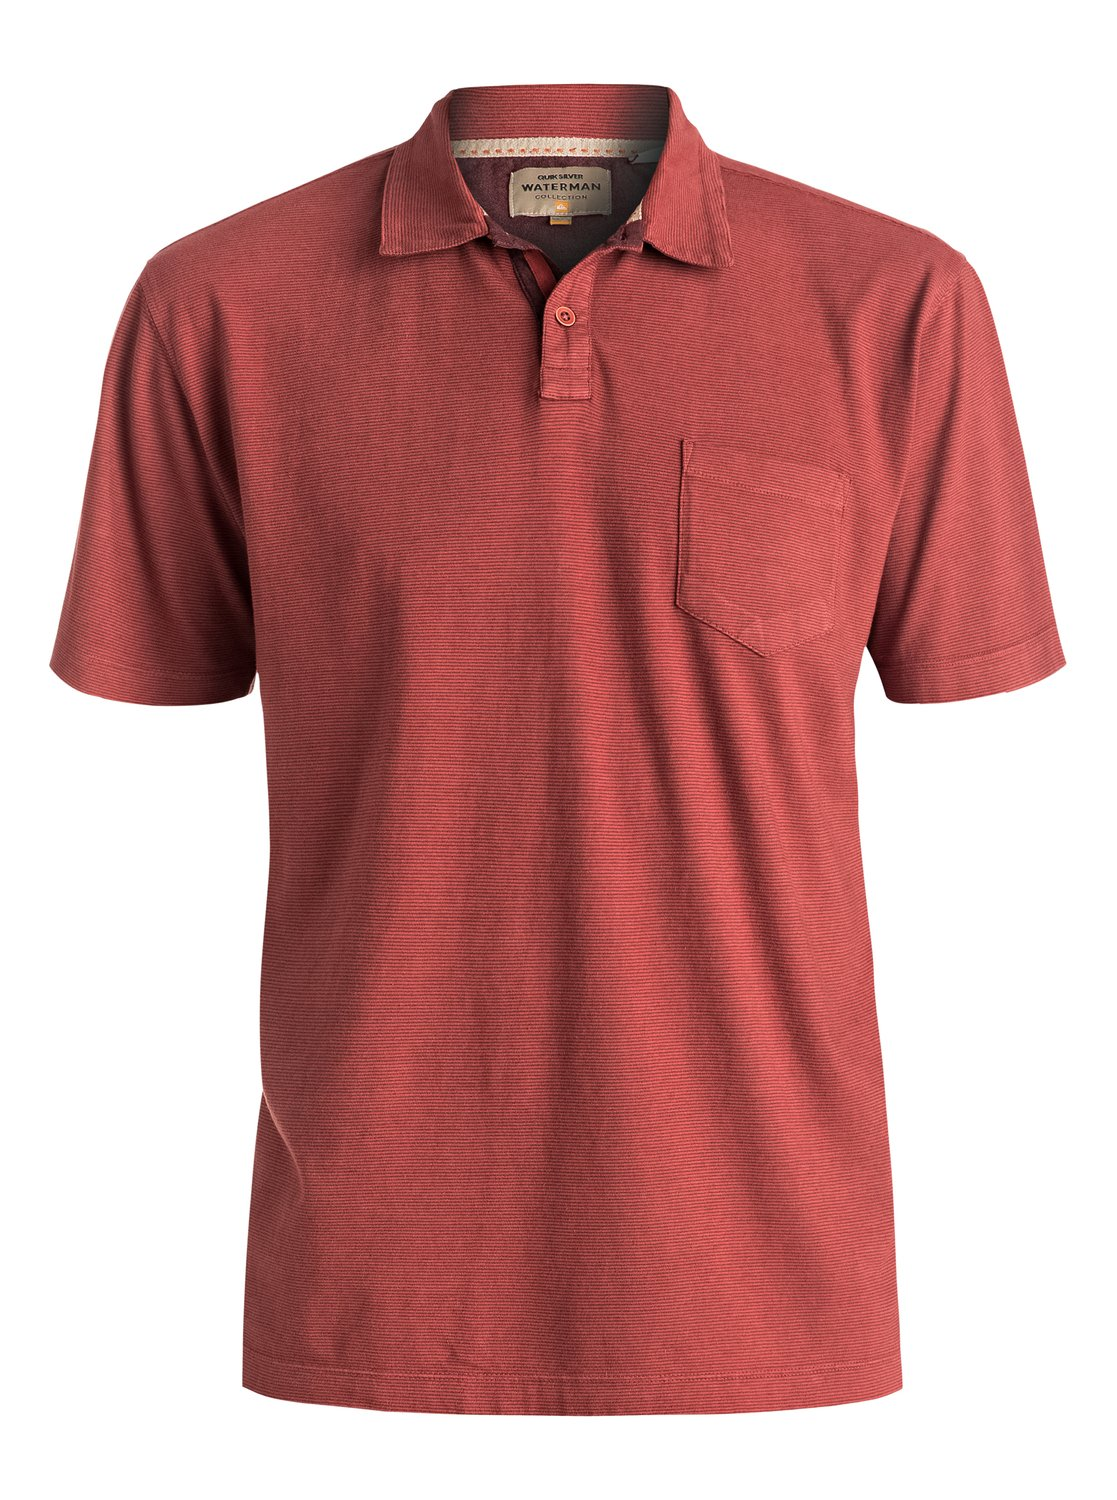 Waterman Strolo 6 - Polo pour Homme - Quiksilver